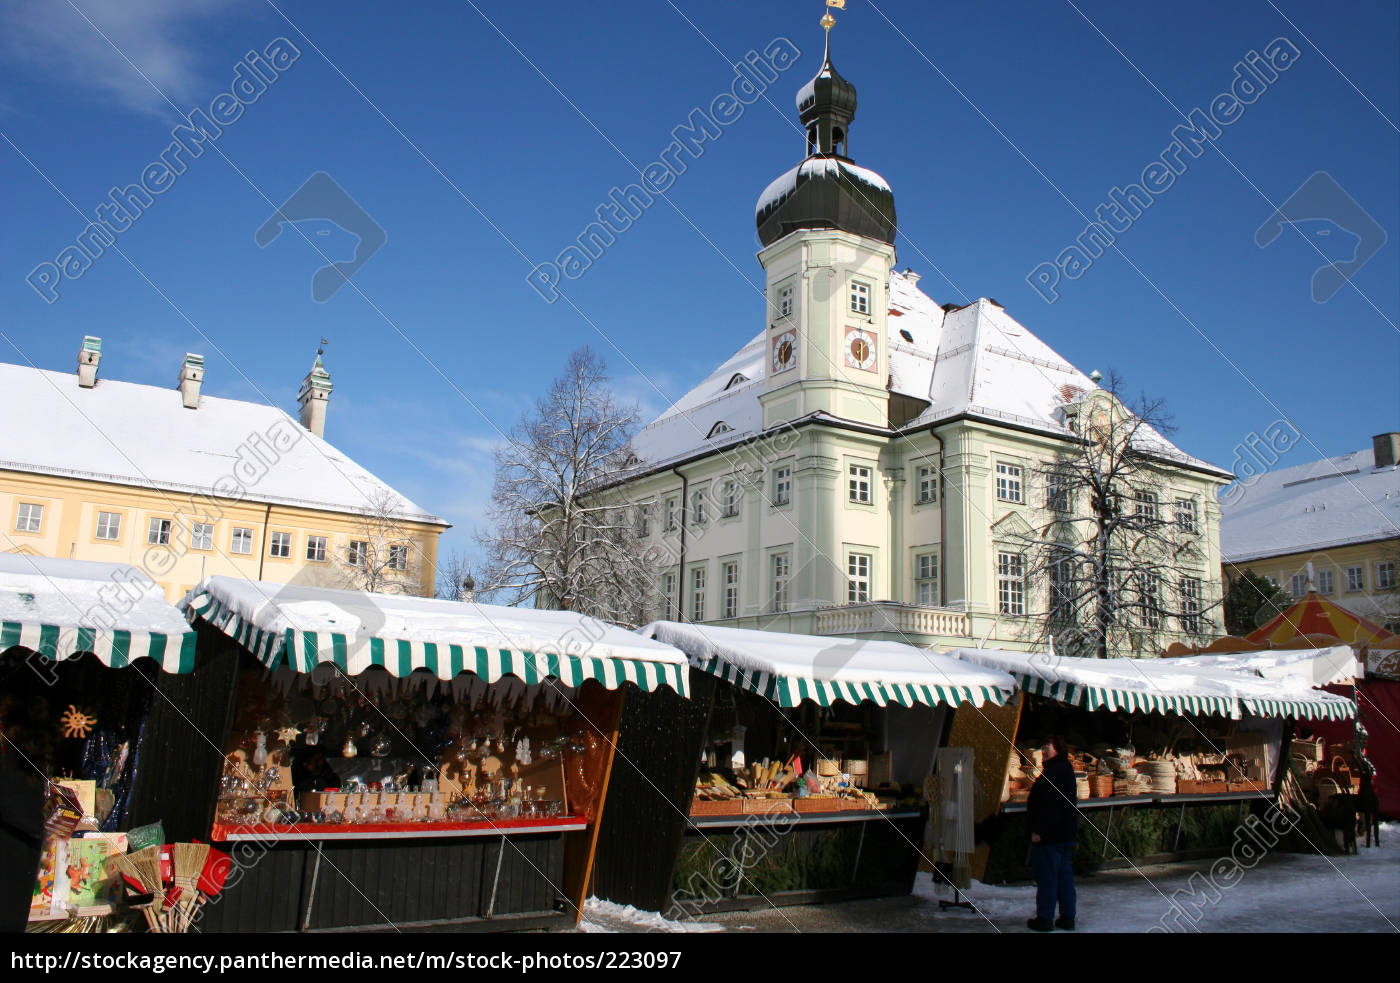 christkindlmarkt, altötting, 2 - 223097